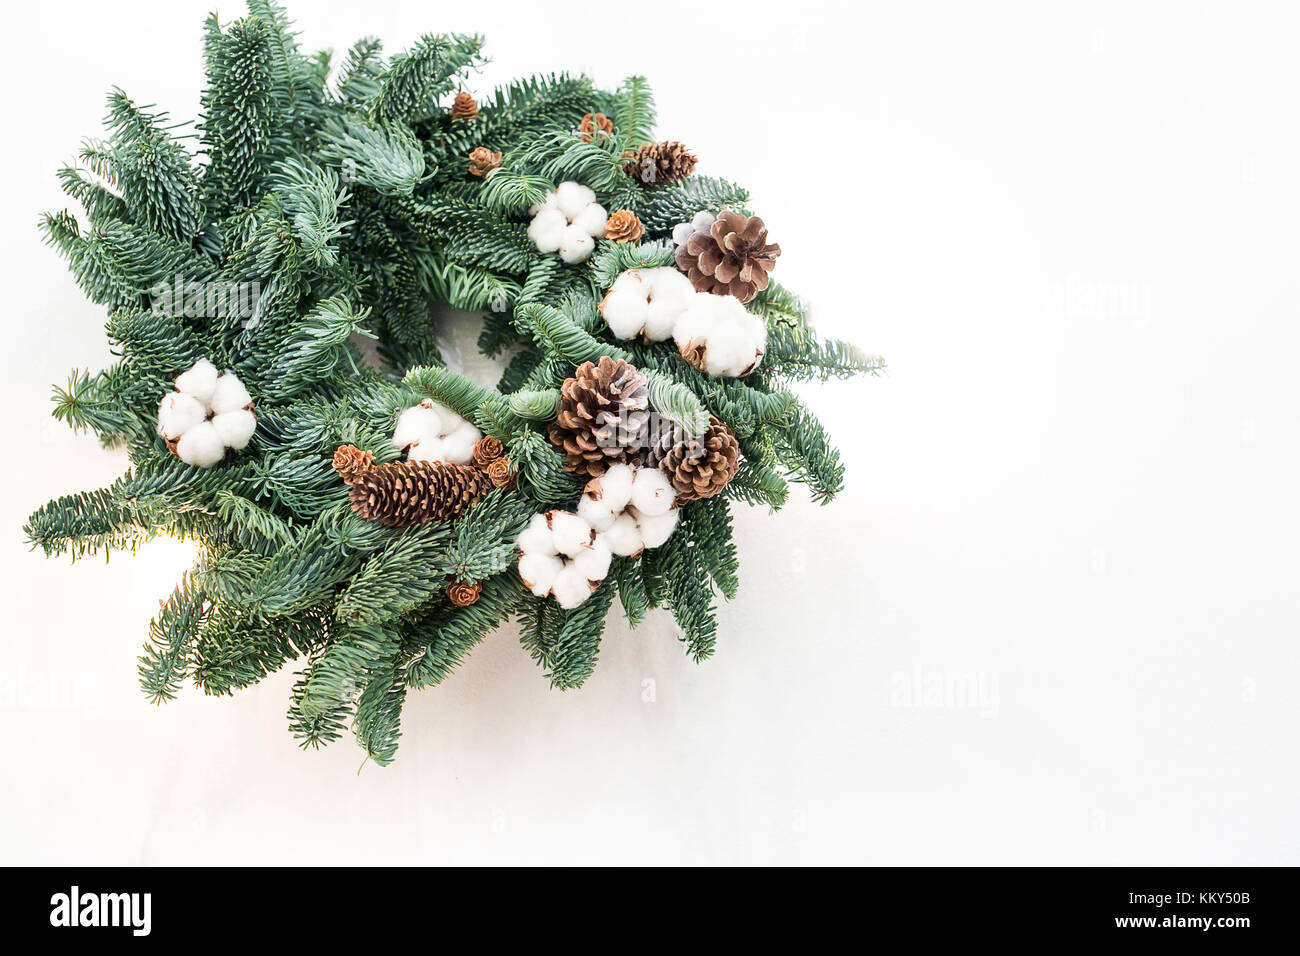 winter, crafting, nature concept. with negative space, lovely wreath made by talented floral designer with the use - Stock Image